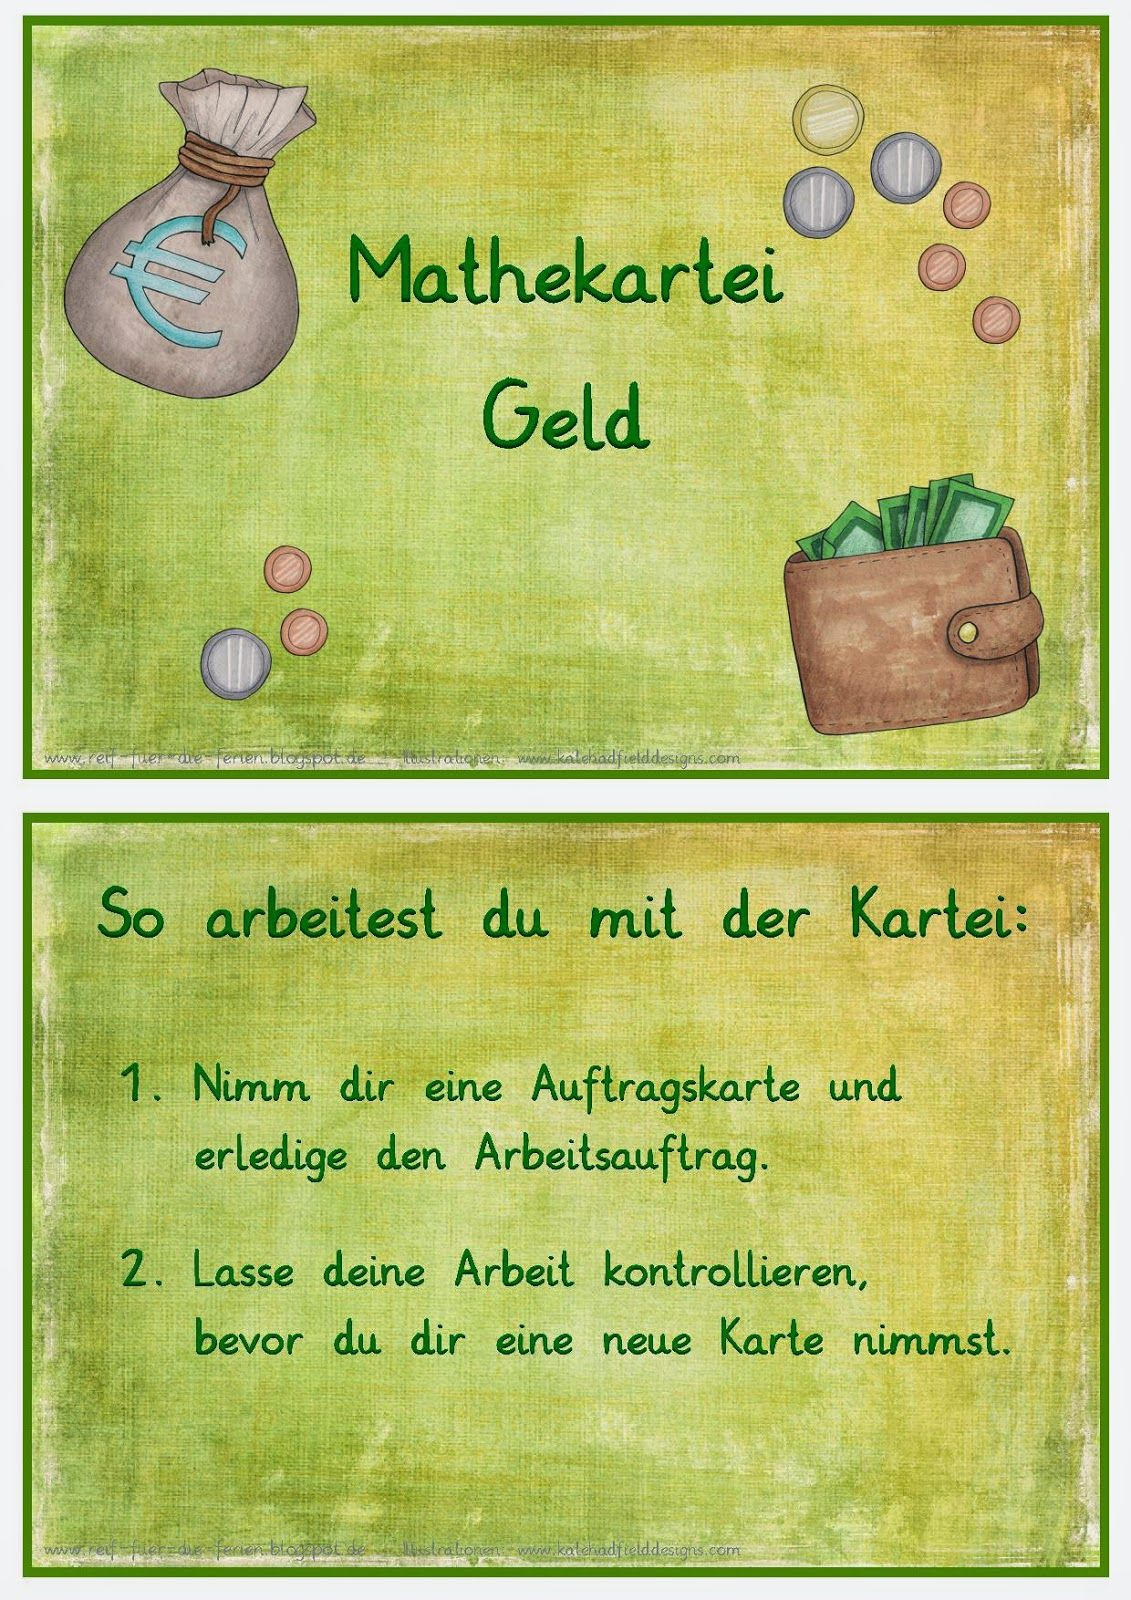 Mathe-Kartei Geld | kézműves | Pinterest | School, Math and Montessori